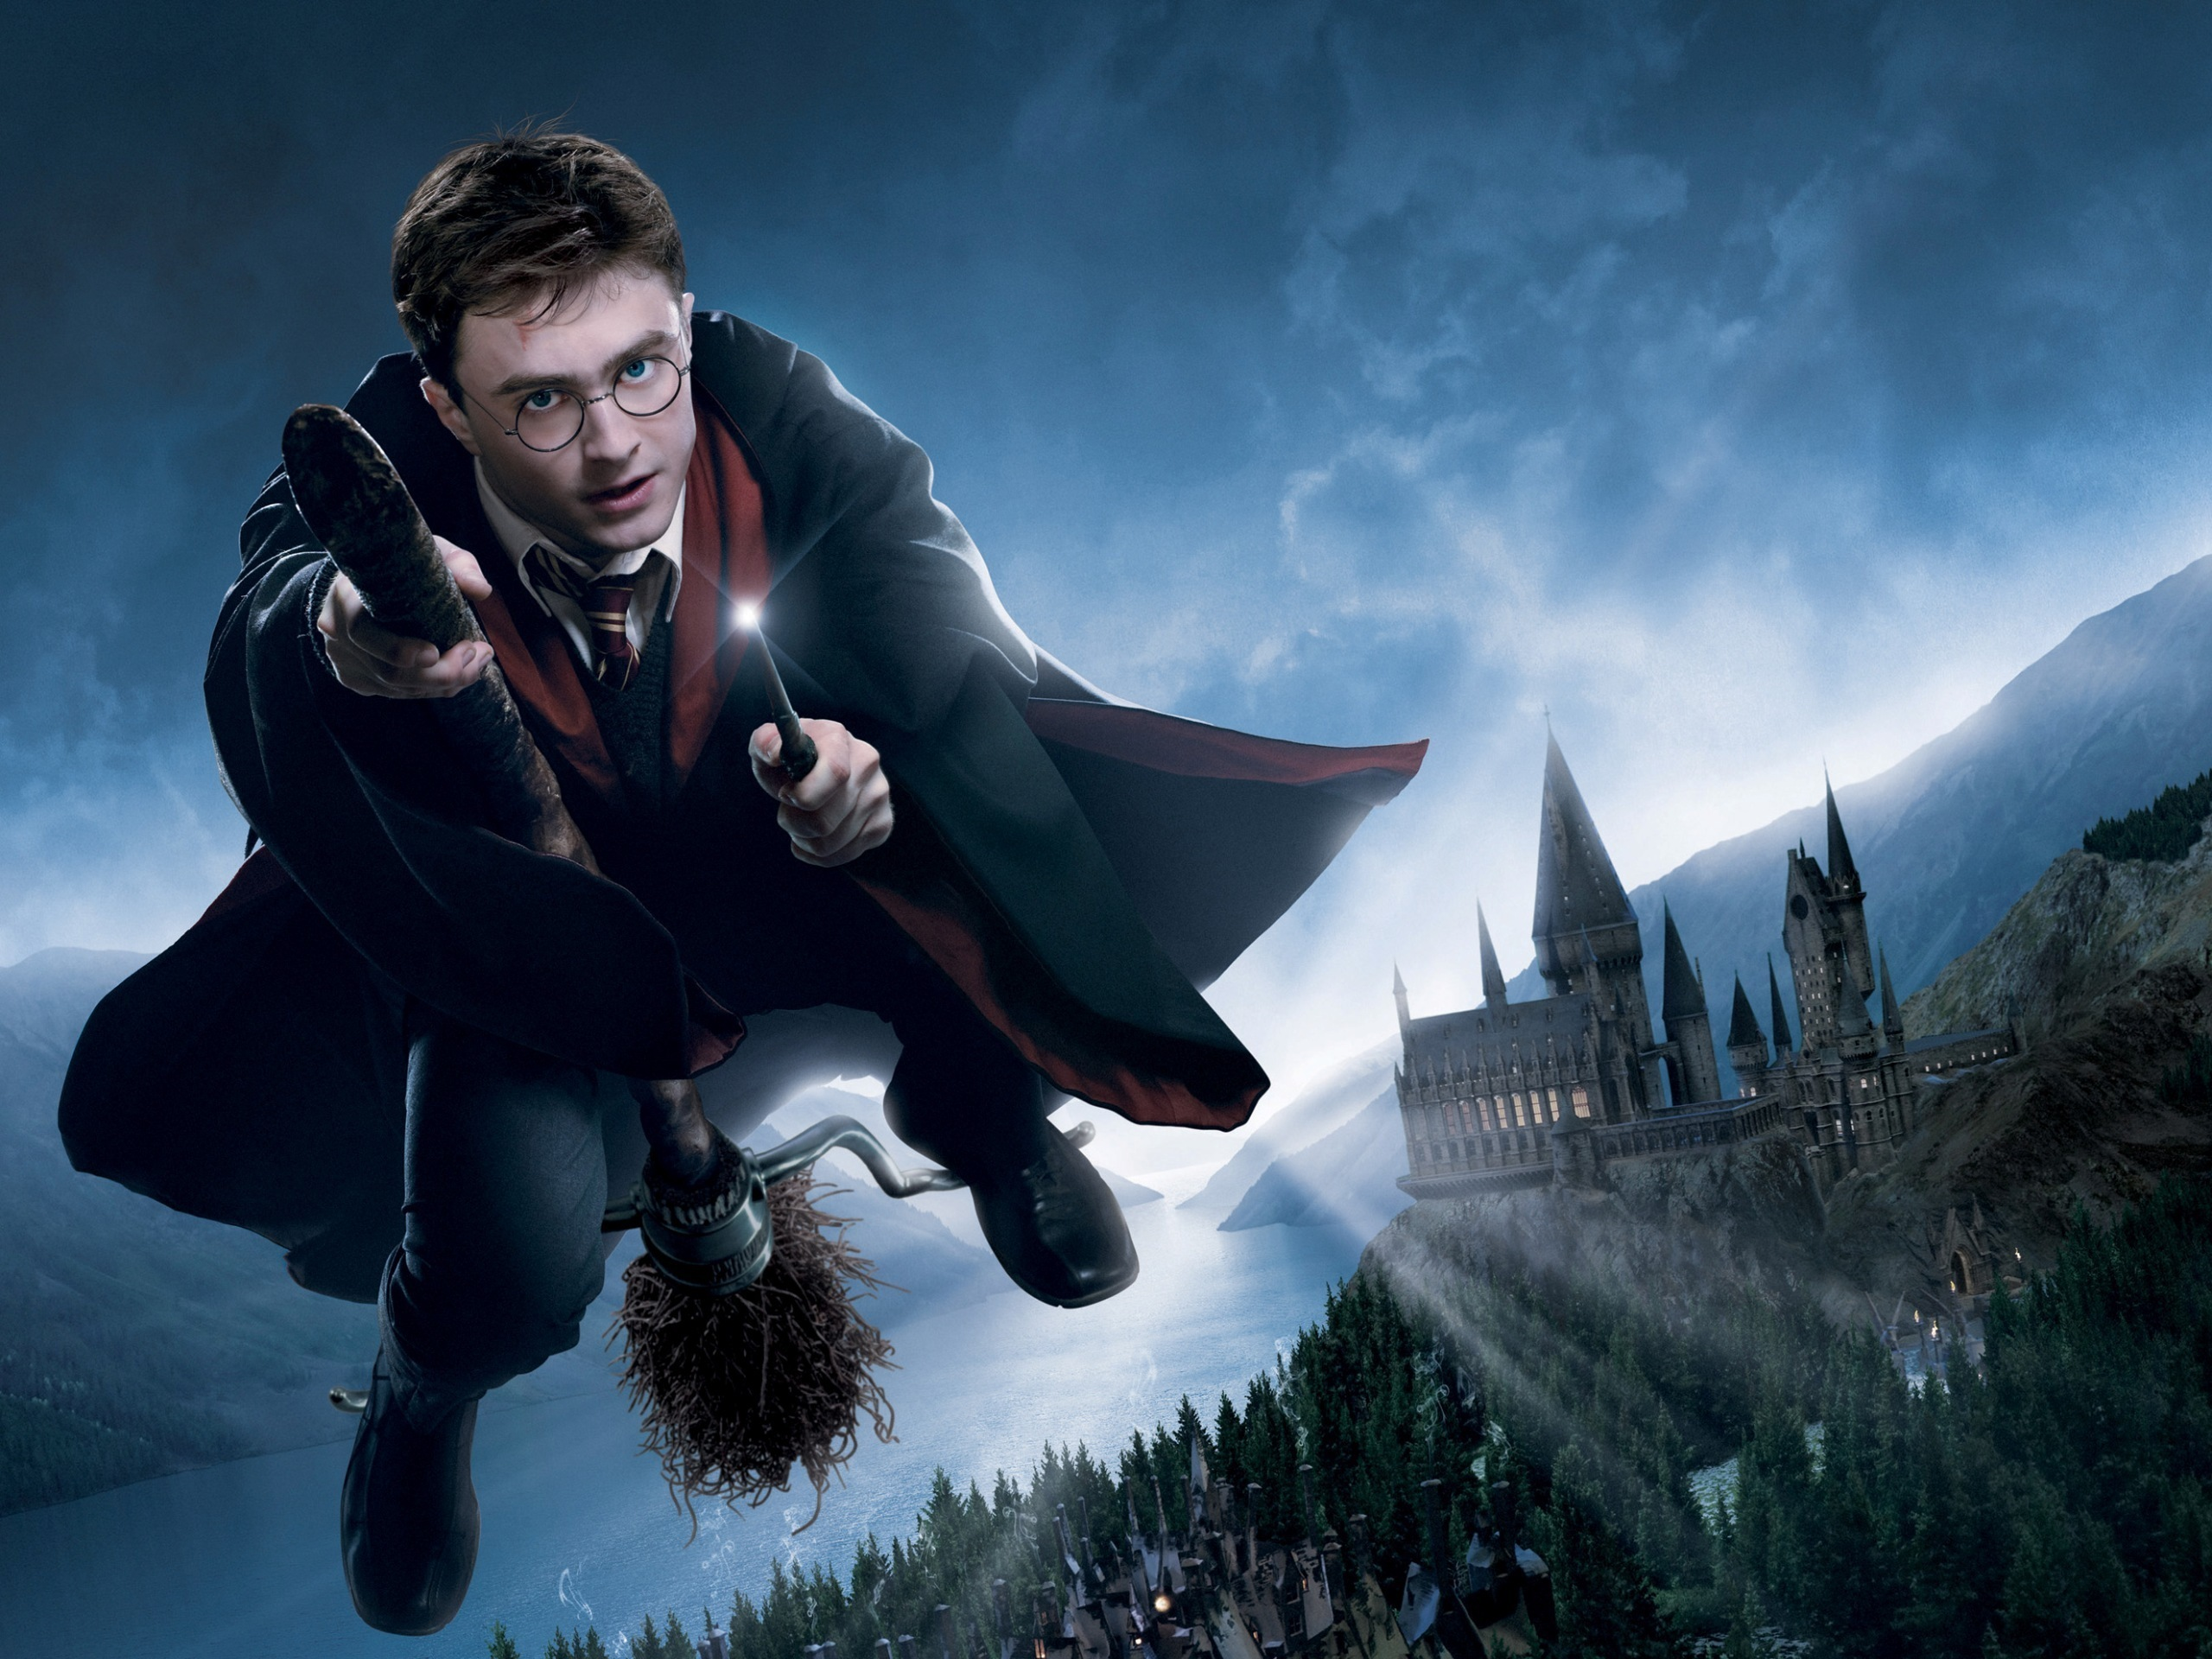 Good Wallpaper Harry Potter Ultra Hd - 178309  Snapshot_25758.jpg